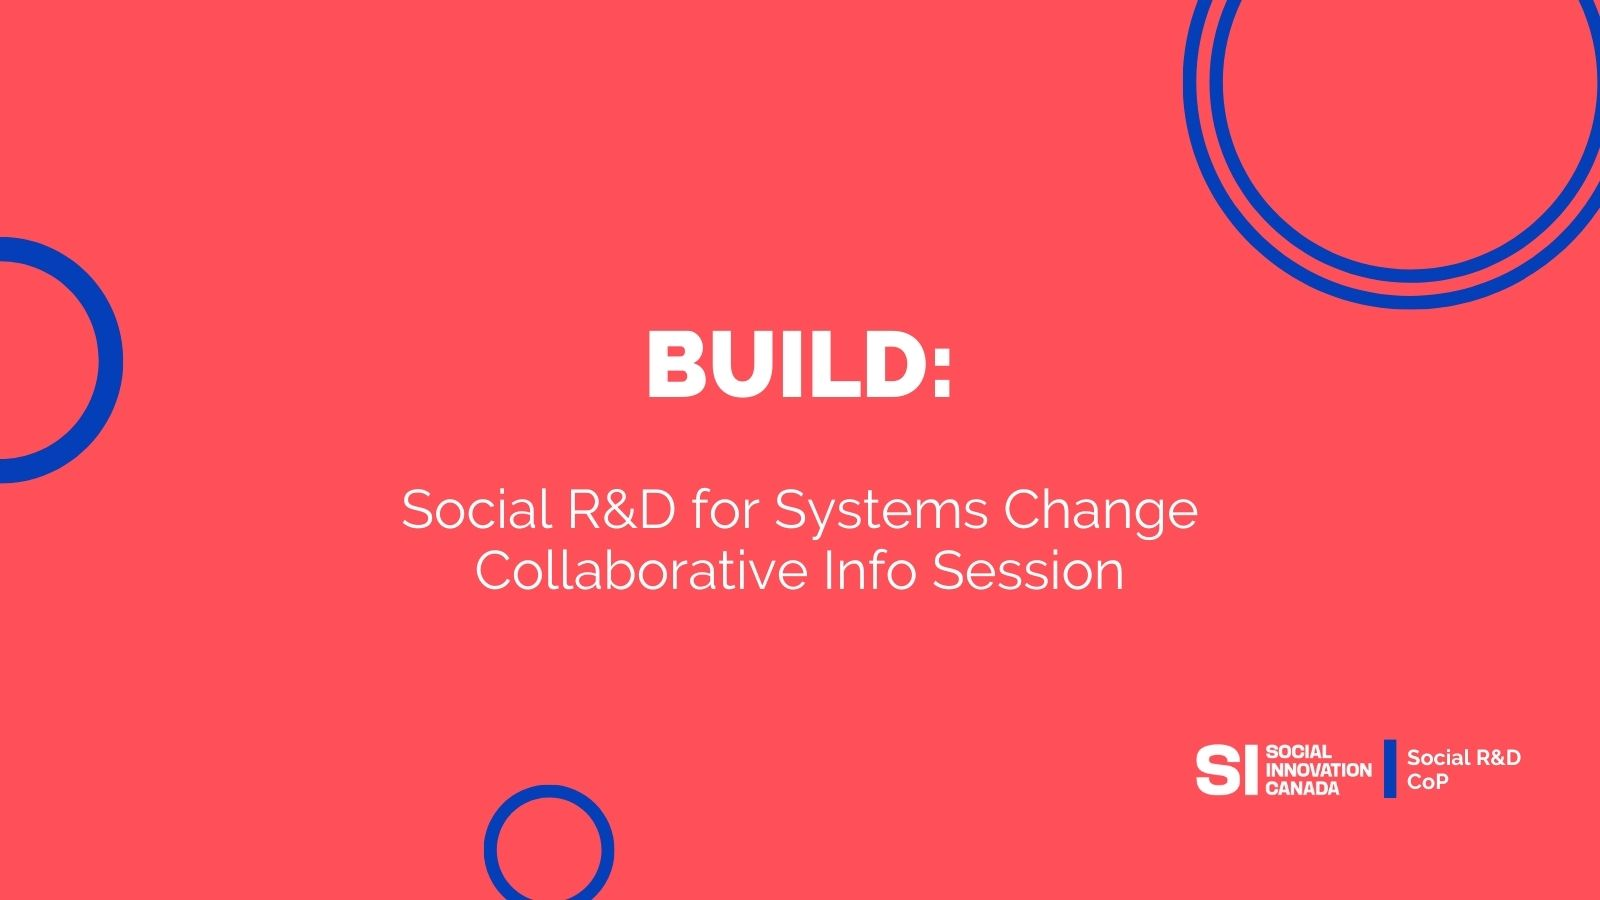 Promo image for Social R&D for Systems Change: Collaborative Info Session, a Build event